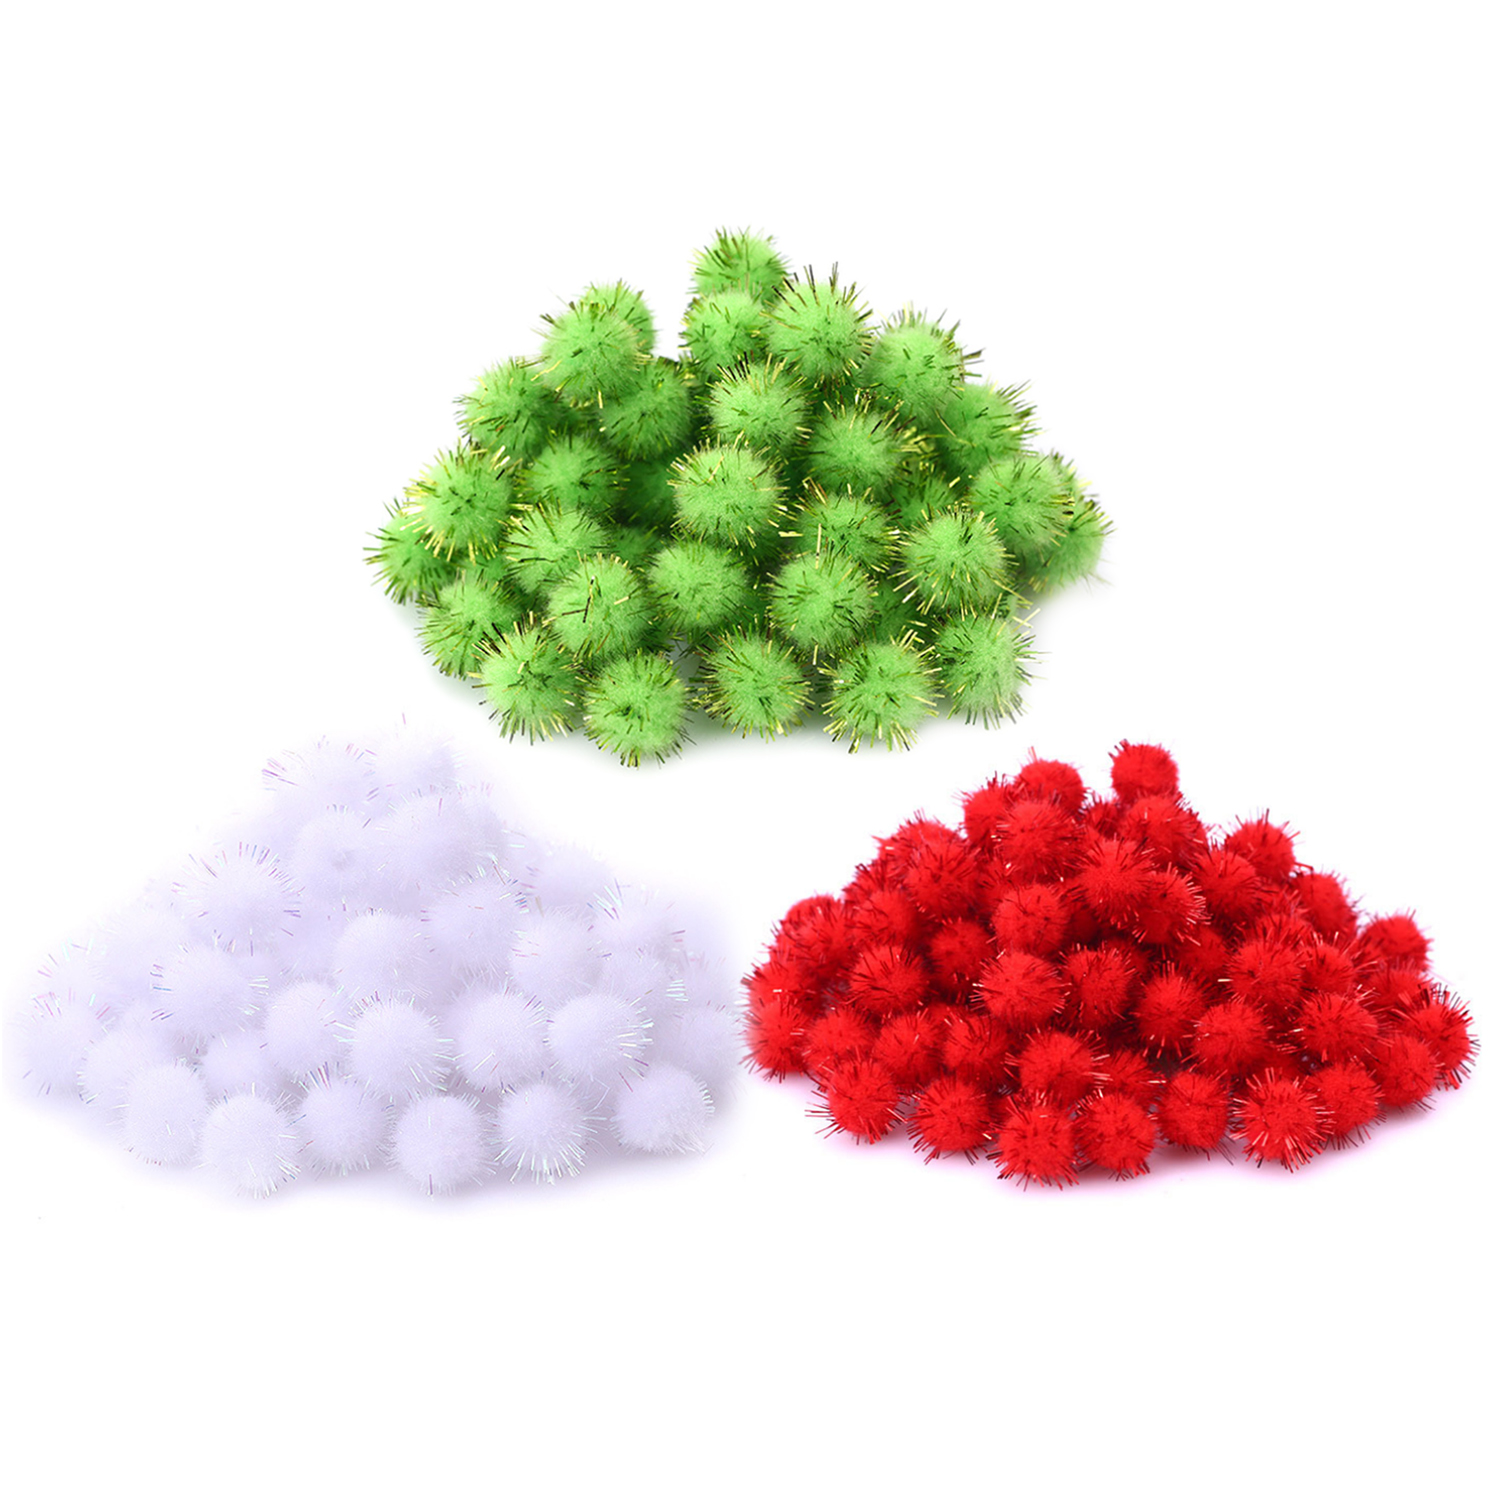 300PCS Red Green White Shining Fur Balls Bling Christmas Pom Poms Pompoms For DIY Projects Arts Crafts Home Room Decoration Toy